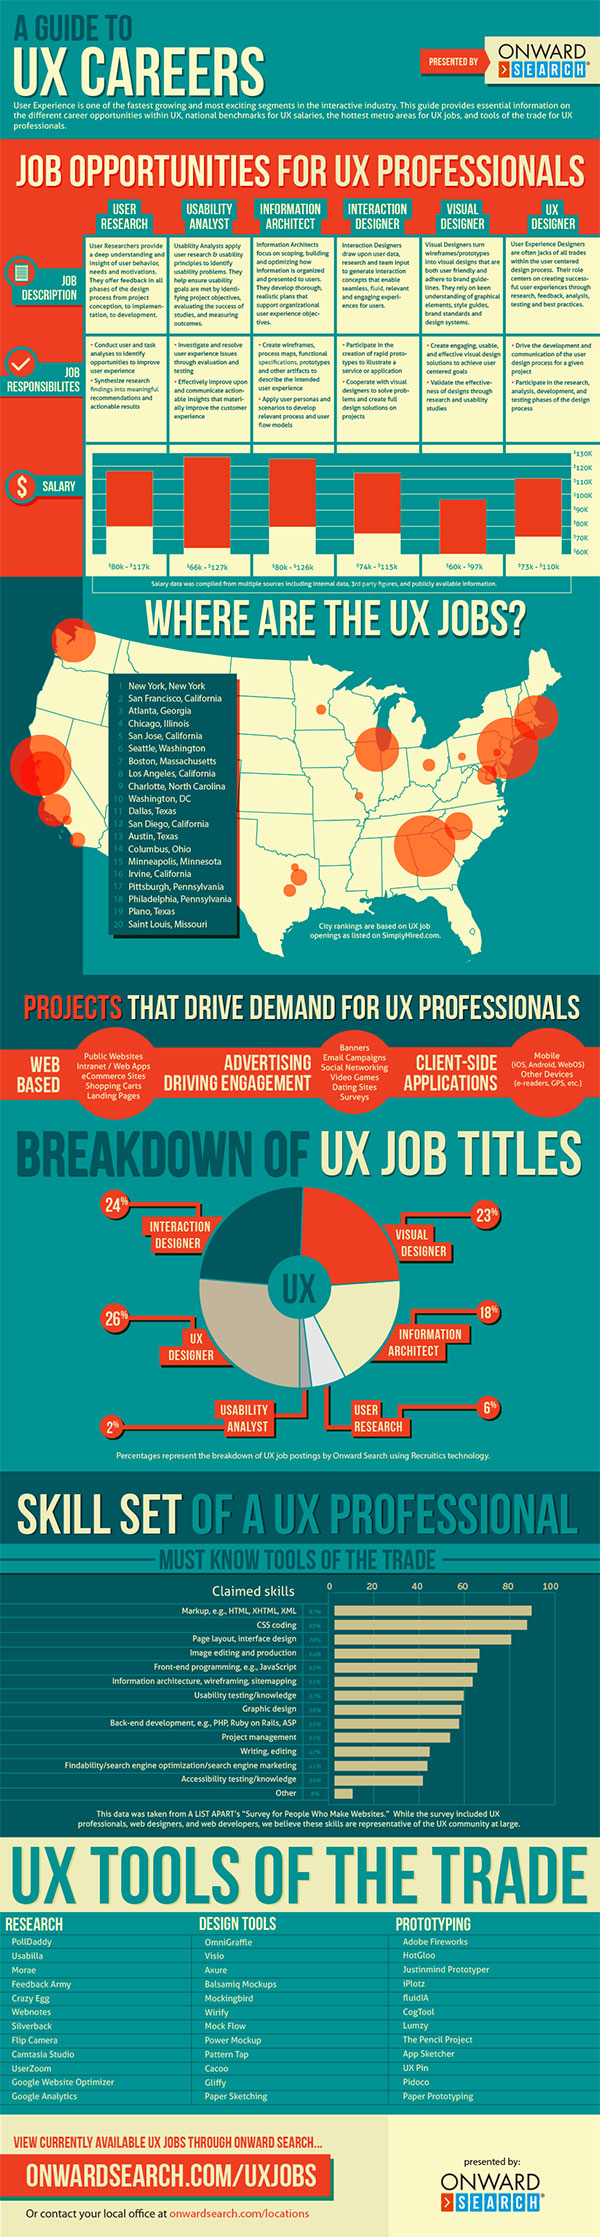 ux-career-guide-infographic-1